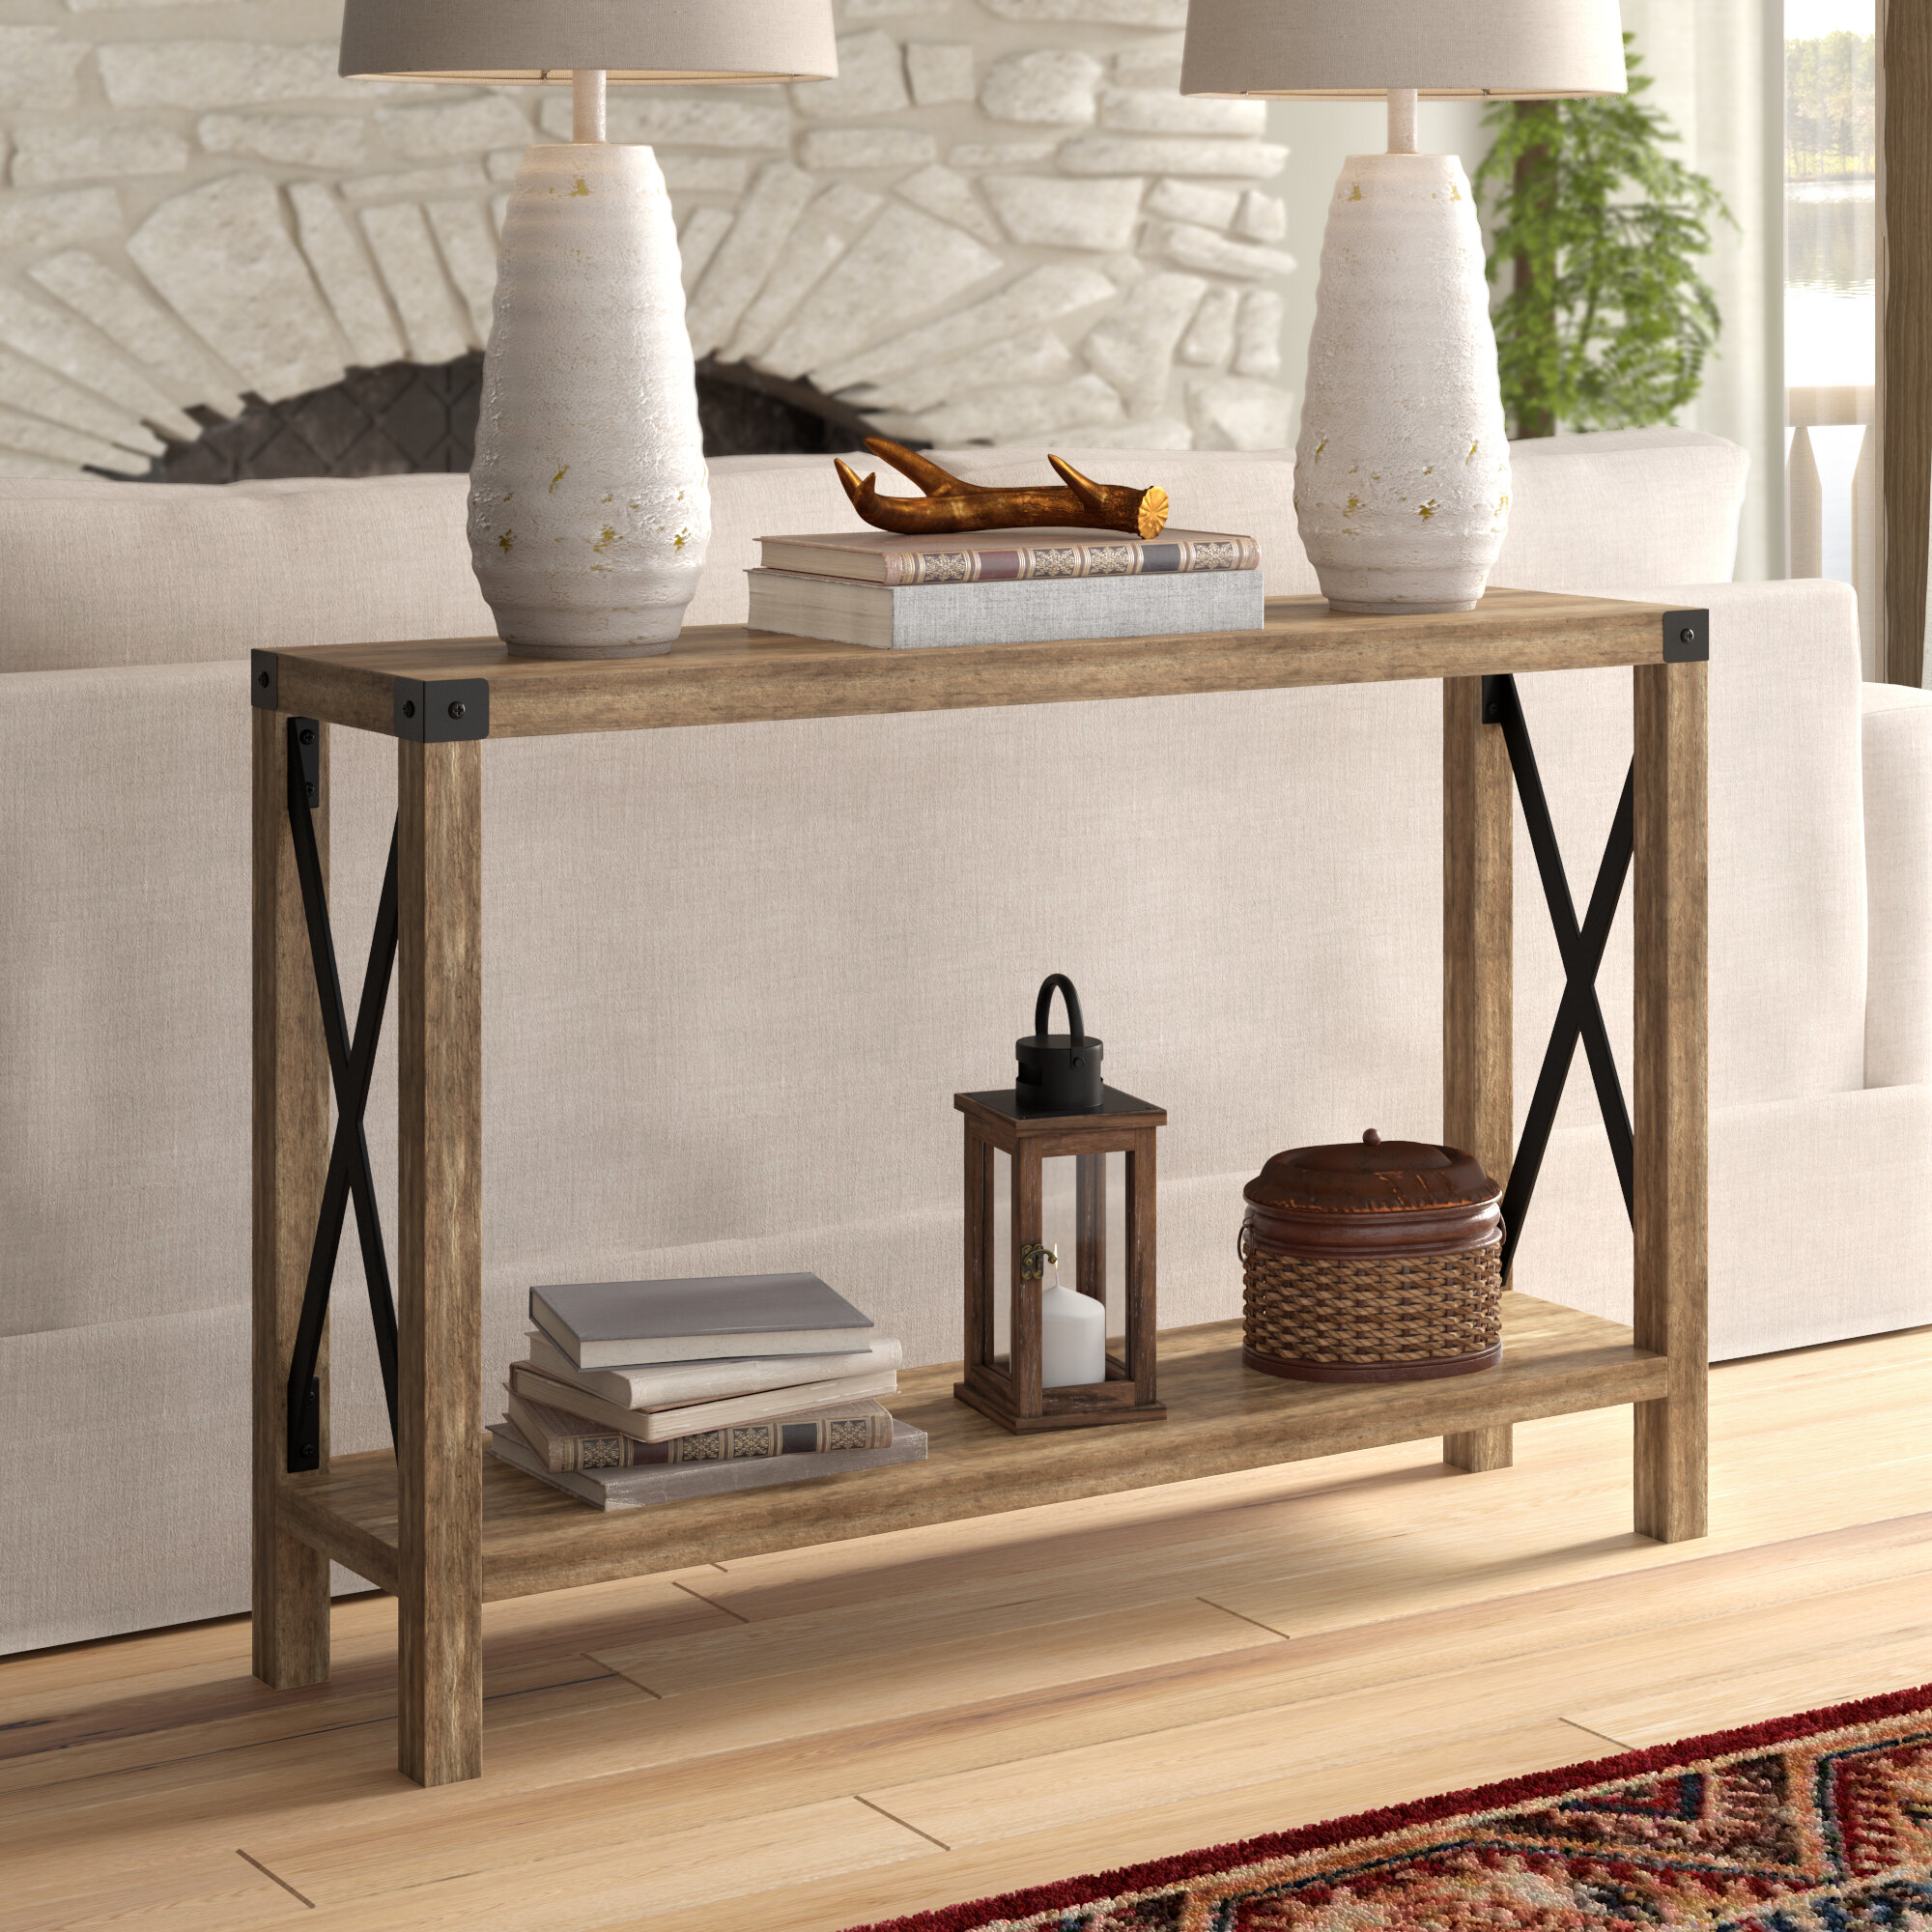 RAAMZO Vintage Brown Finish Metal Frame 2-Tier Entryway Console Sofa Table with X-Design Sides